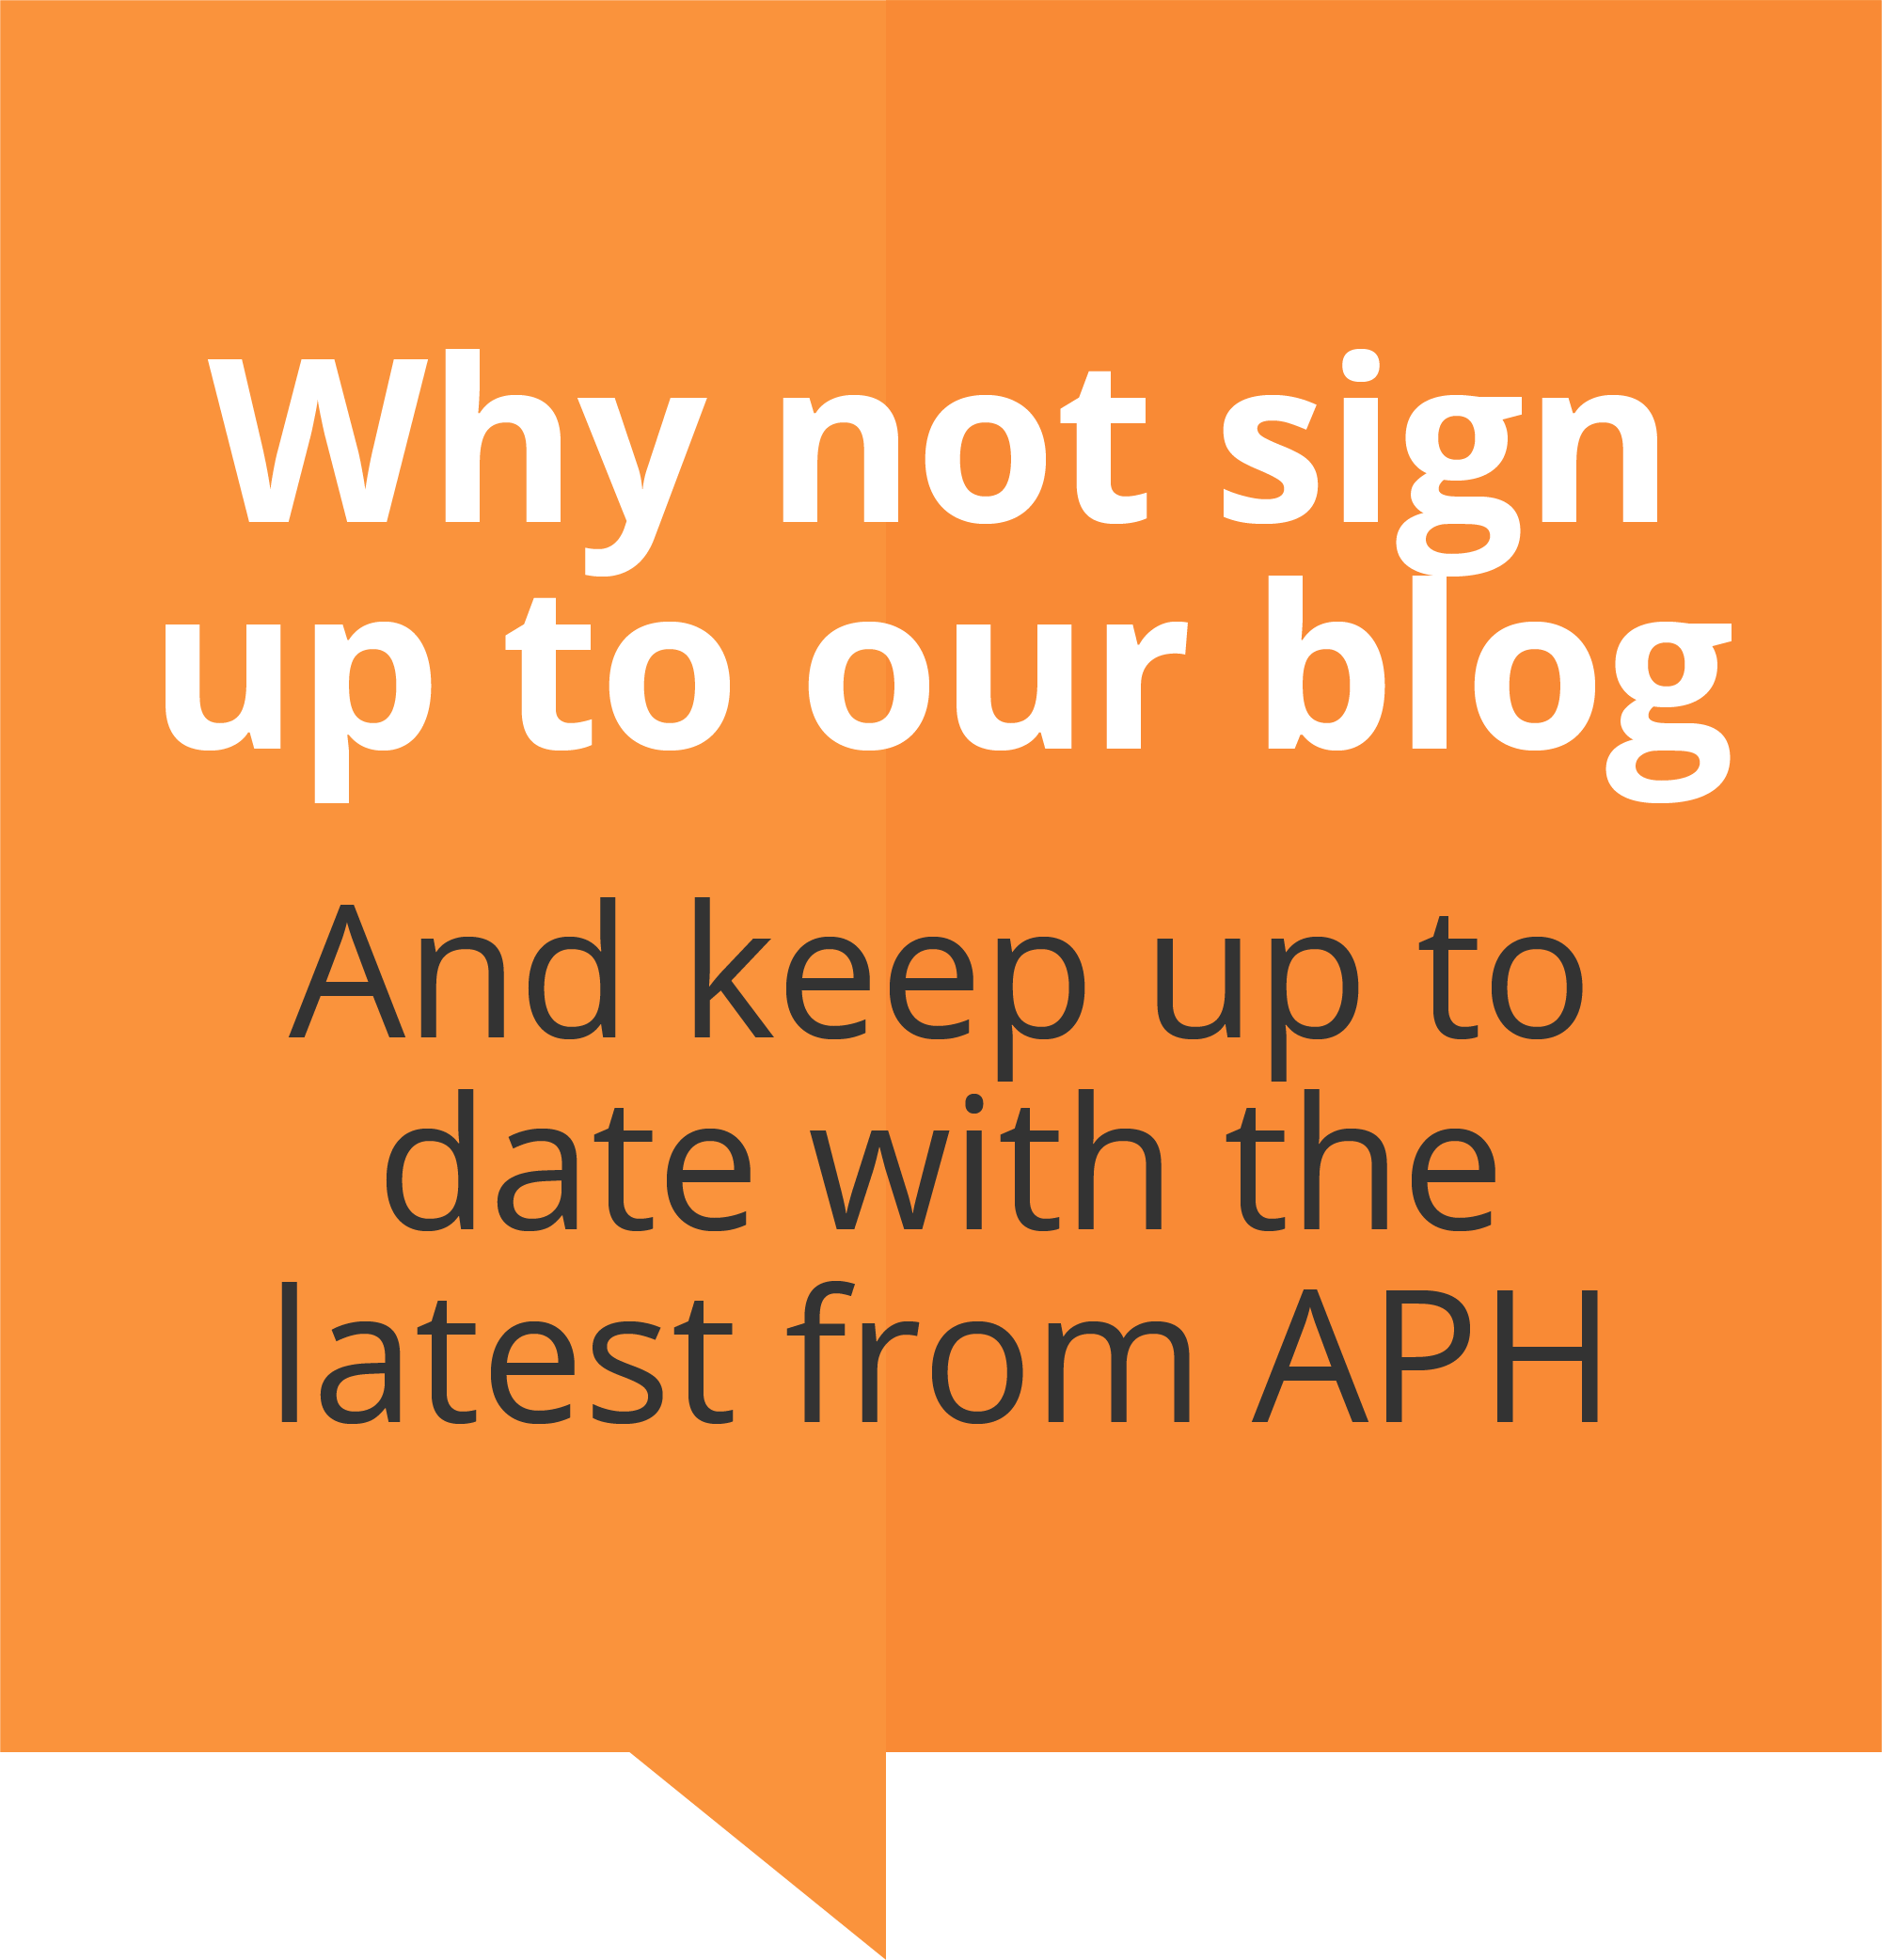 Why not sign up to our blog and keep up to date with the latest ERP know-how?